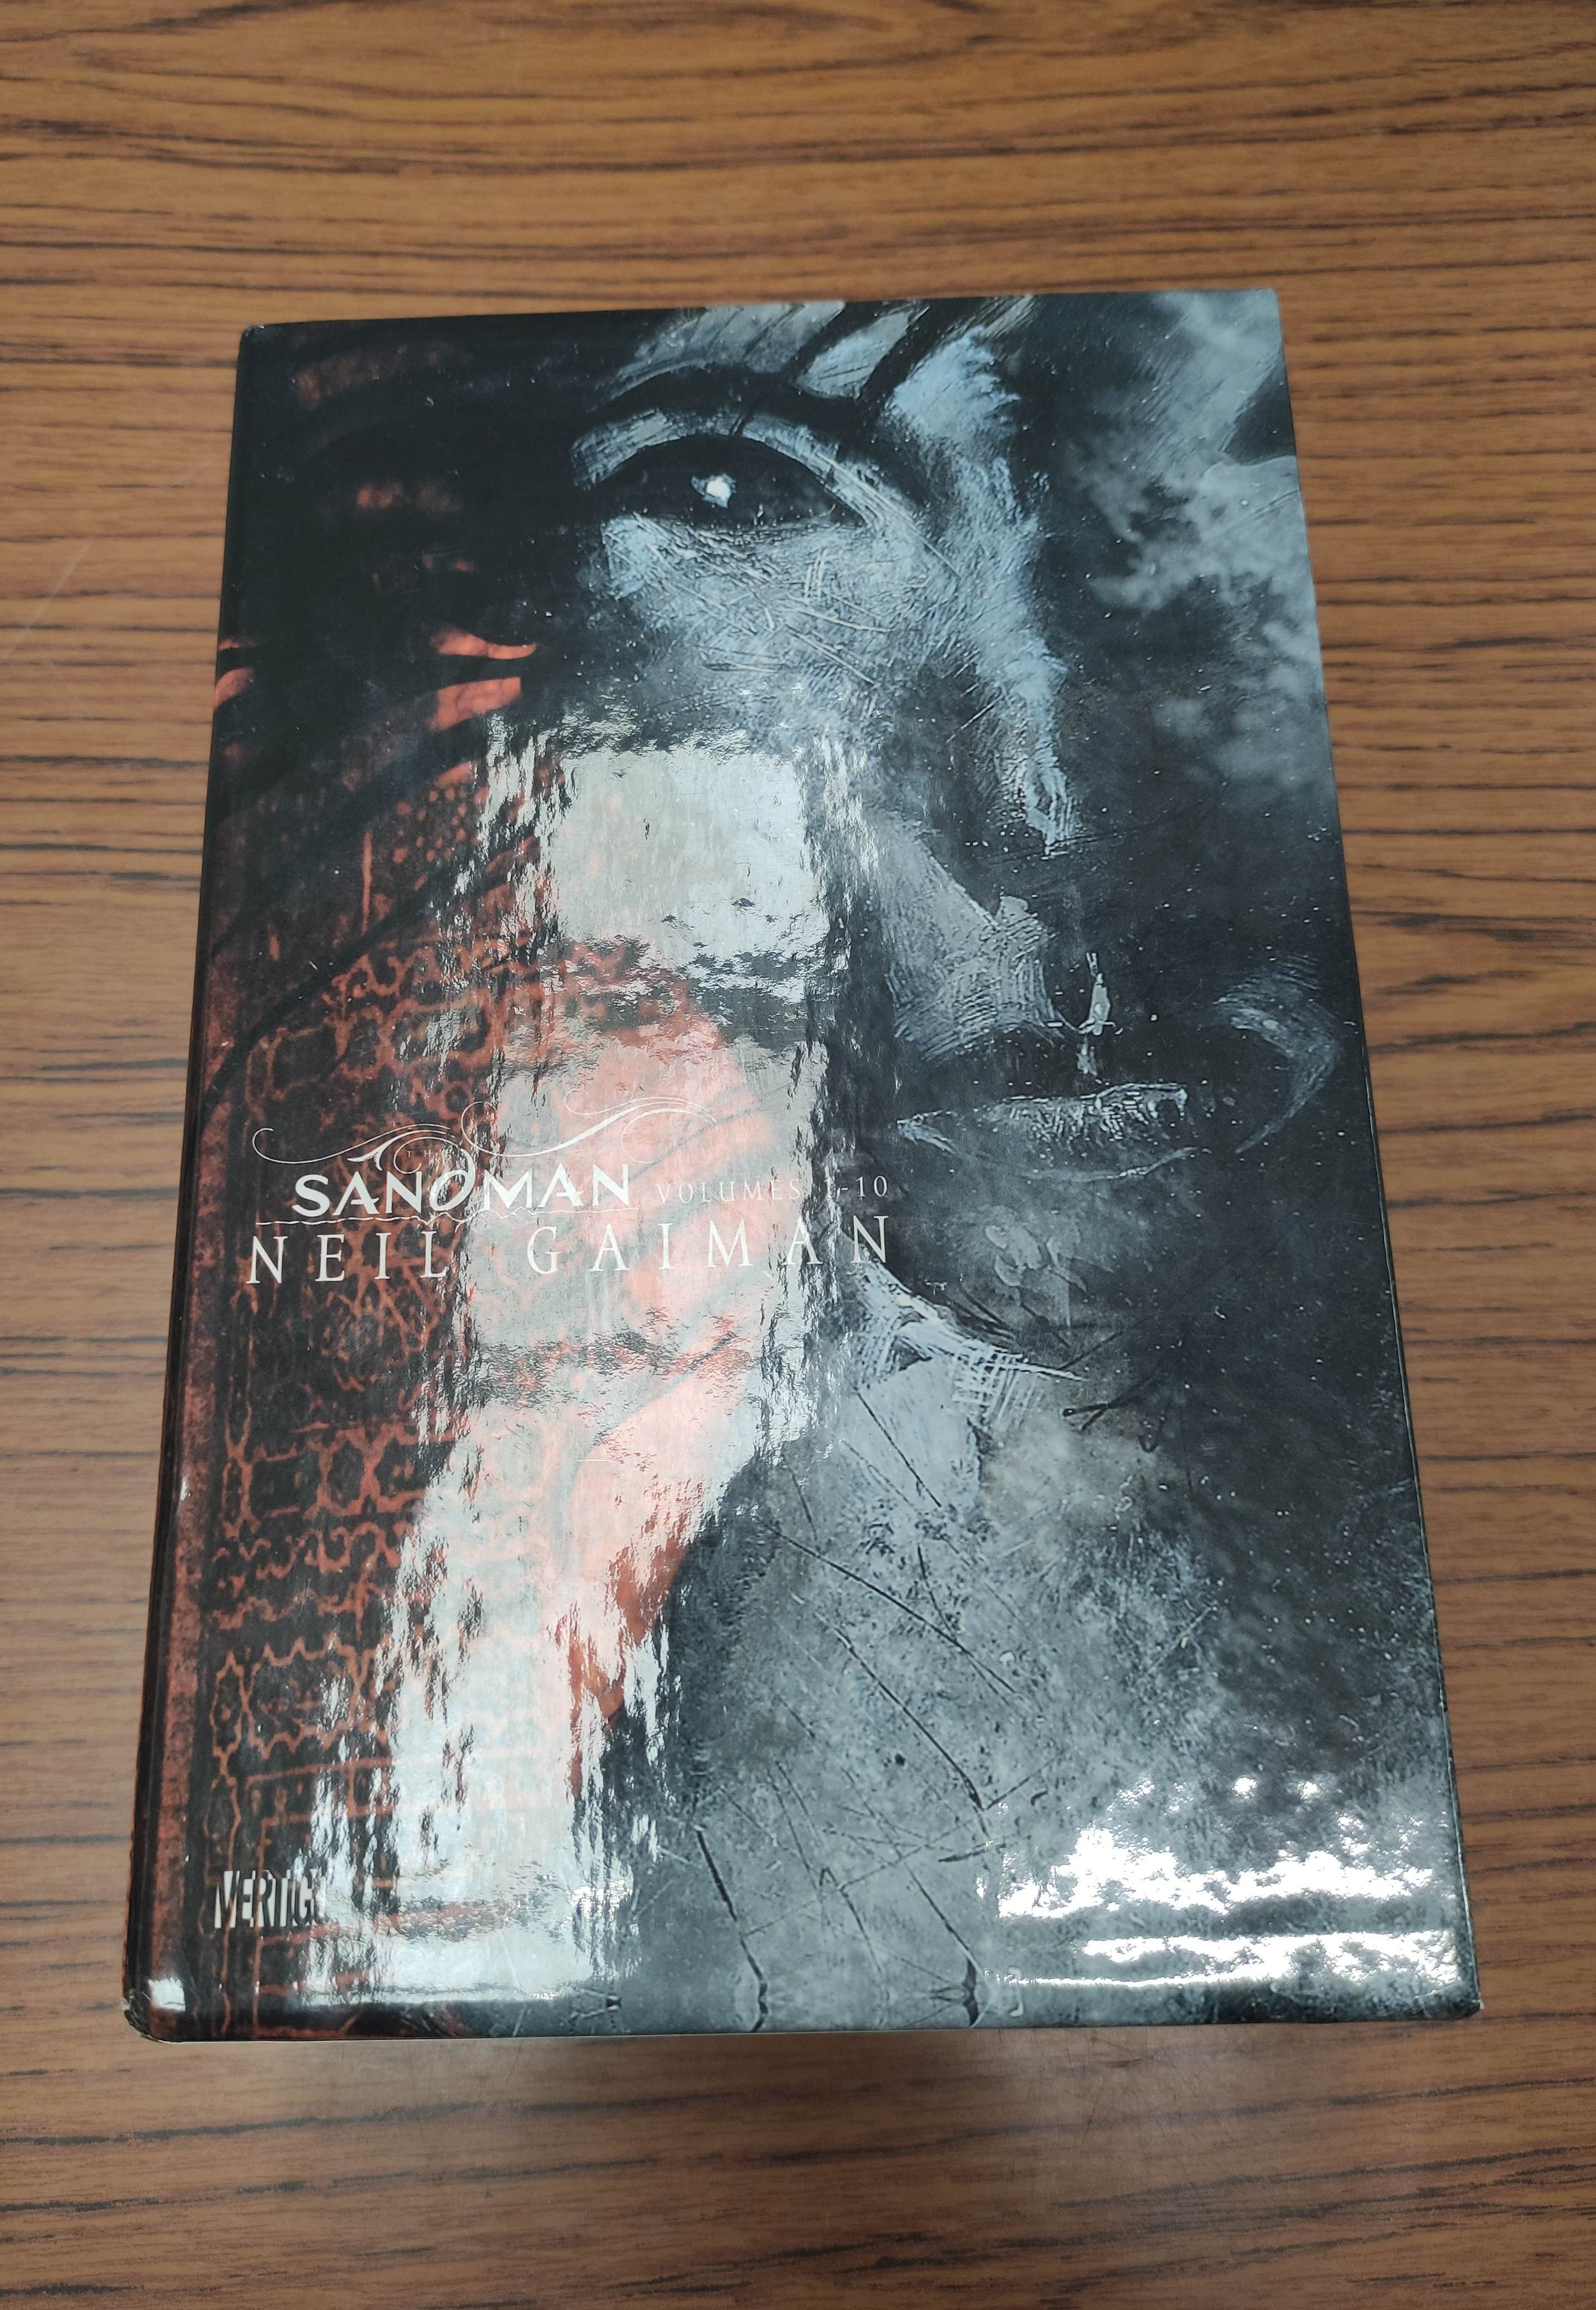 GAIMAN NEIL.The Sandman. Vols. 1 to 10 in wrappers & slip case; also 5 others, Neil Gaiman. - Image 5 of 17